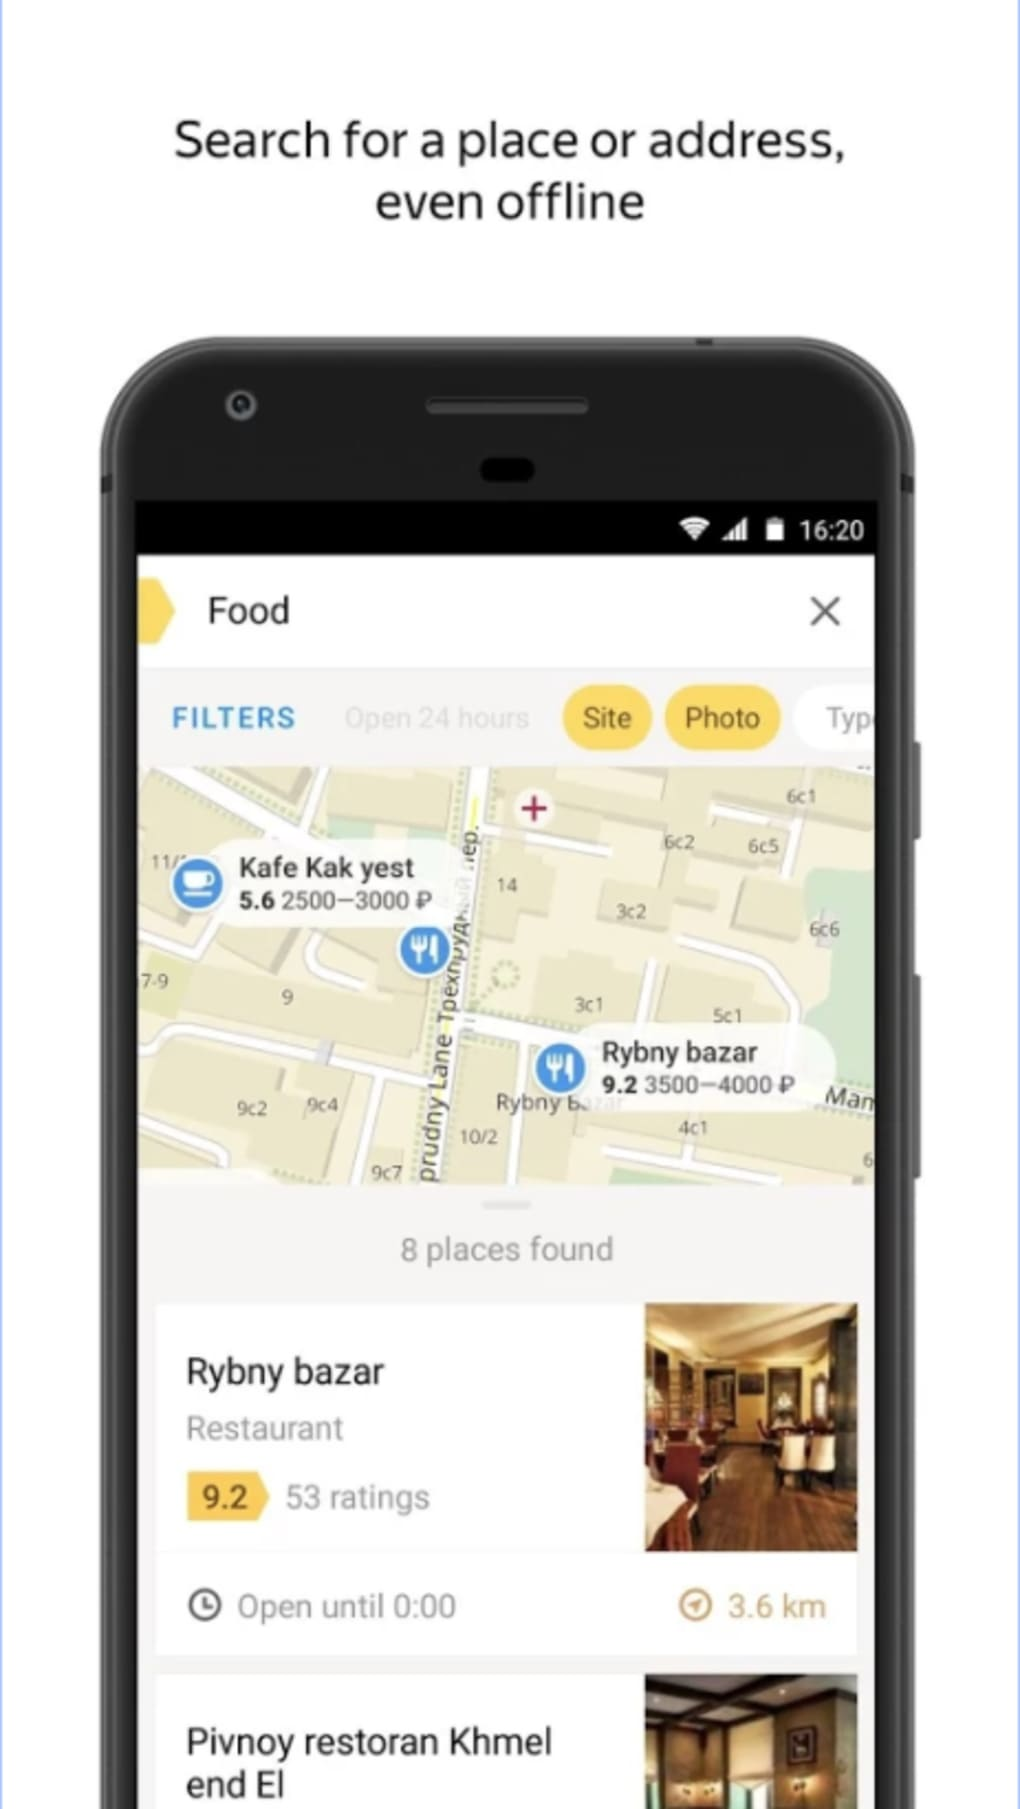 Yandex Maps for Android - Download on iphone android, google maps android, market android, apps android, plex android, gps android,